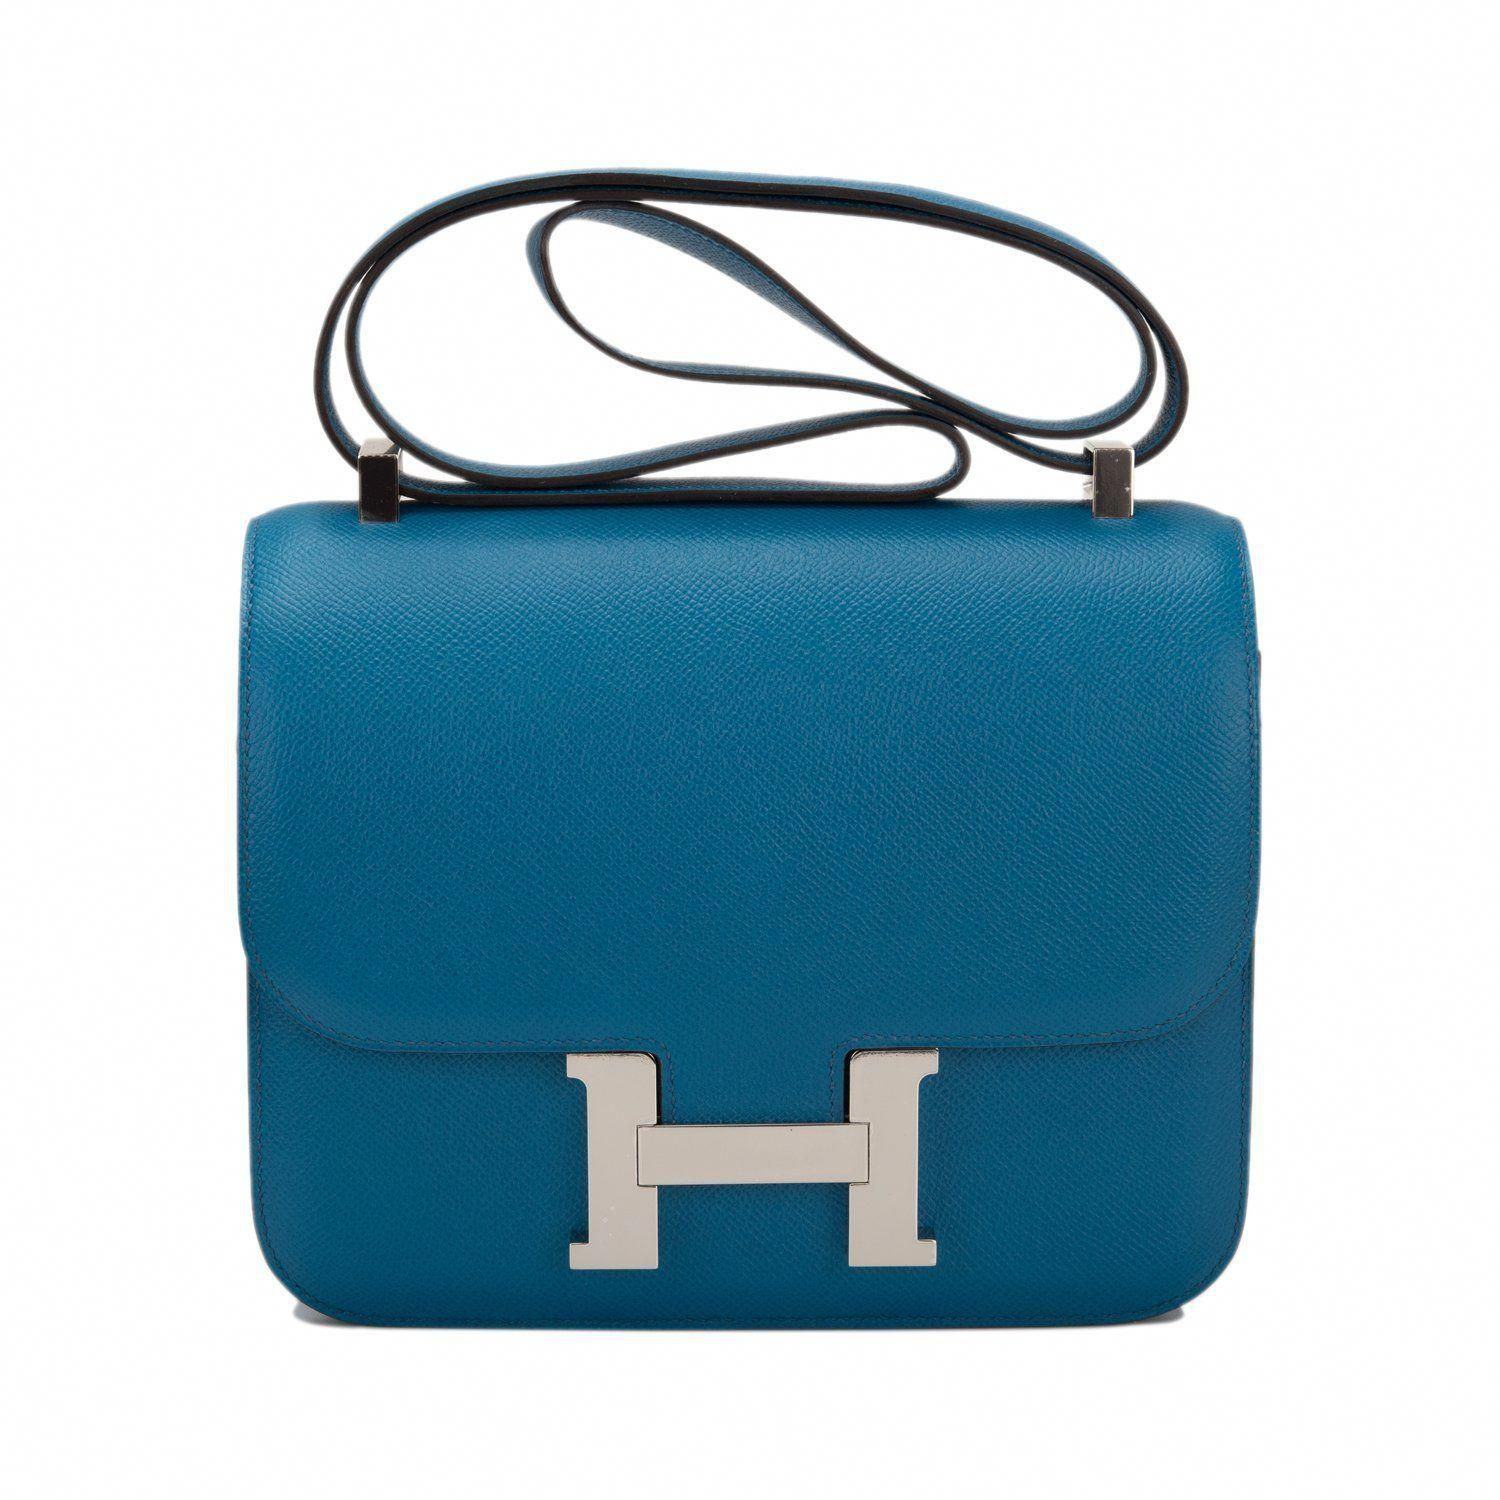 df08e885c711 Hermes Blue Izmir Constance 24cm of epsom leather with palladium hardware  in new or never worn